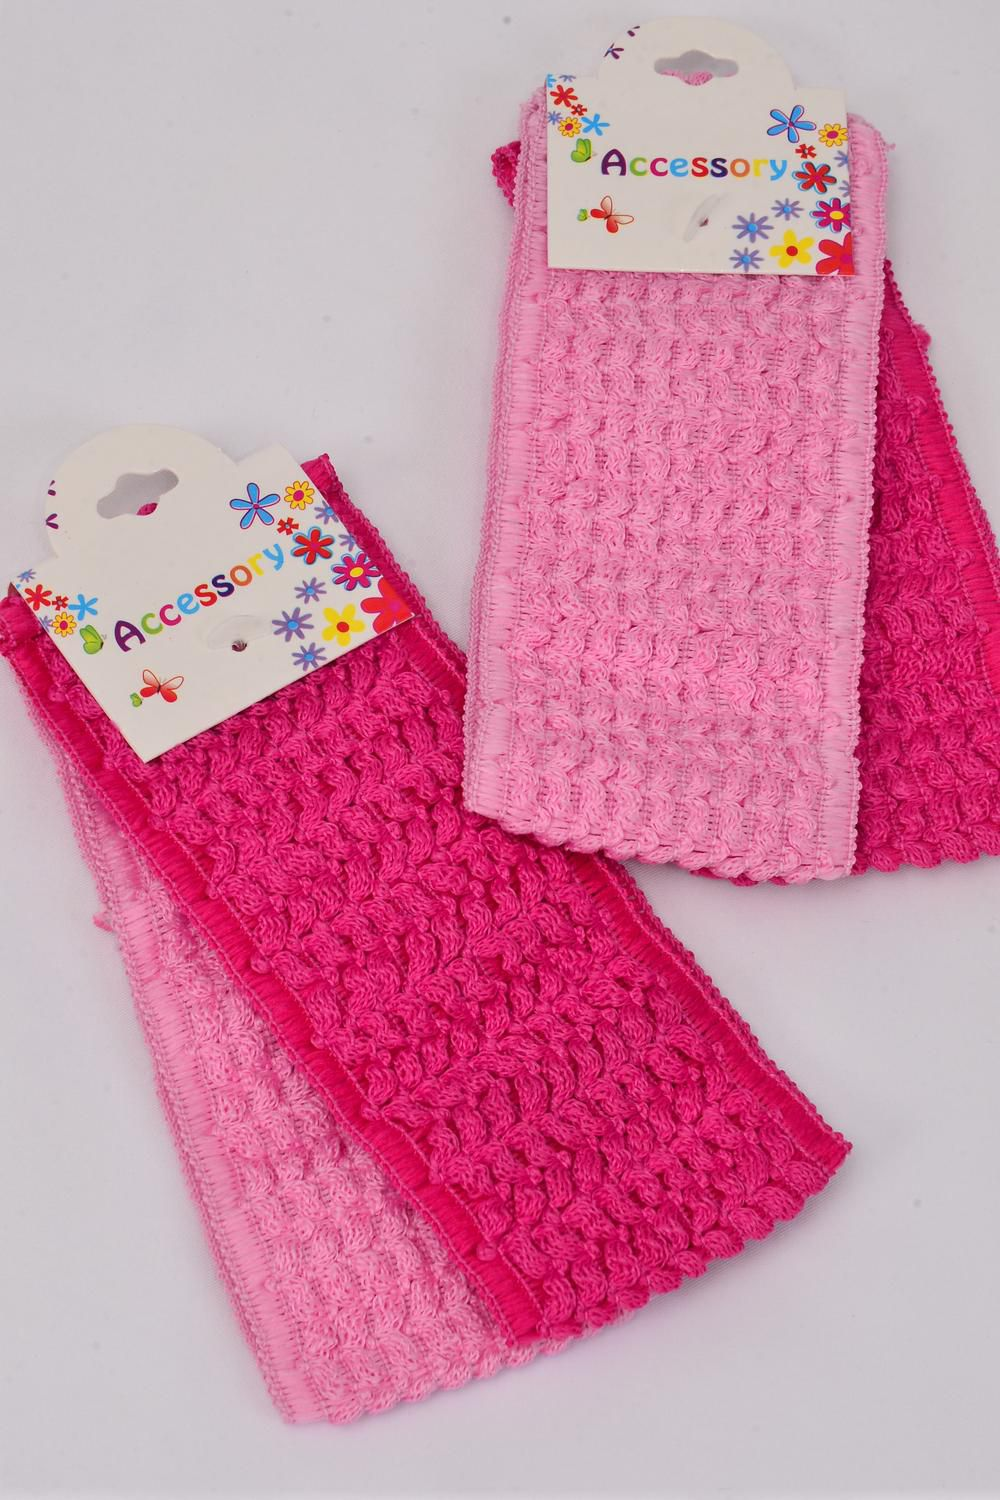 "Headband Crochet 2.25 Inch Wide 24 pcs Pink Mix/DZ **Pink Mix** Stretch** Size-2.25"" Wide,Hang Tag & OPP Bag & UPC Code"